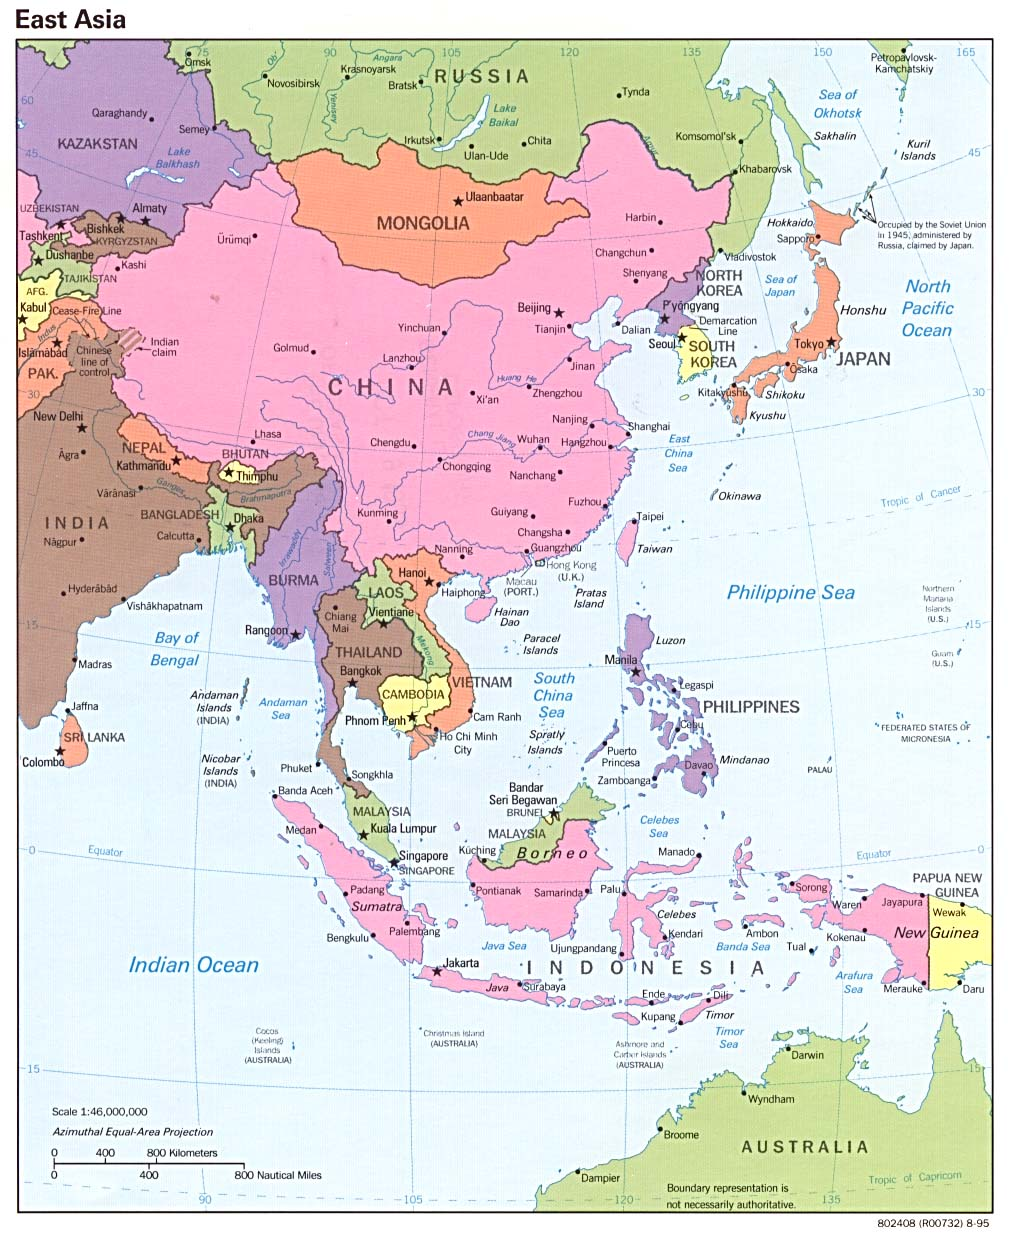 East asia political map 1995